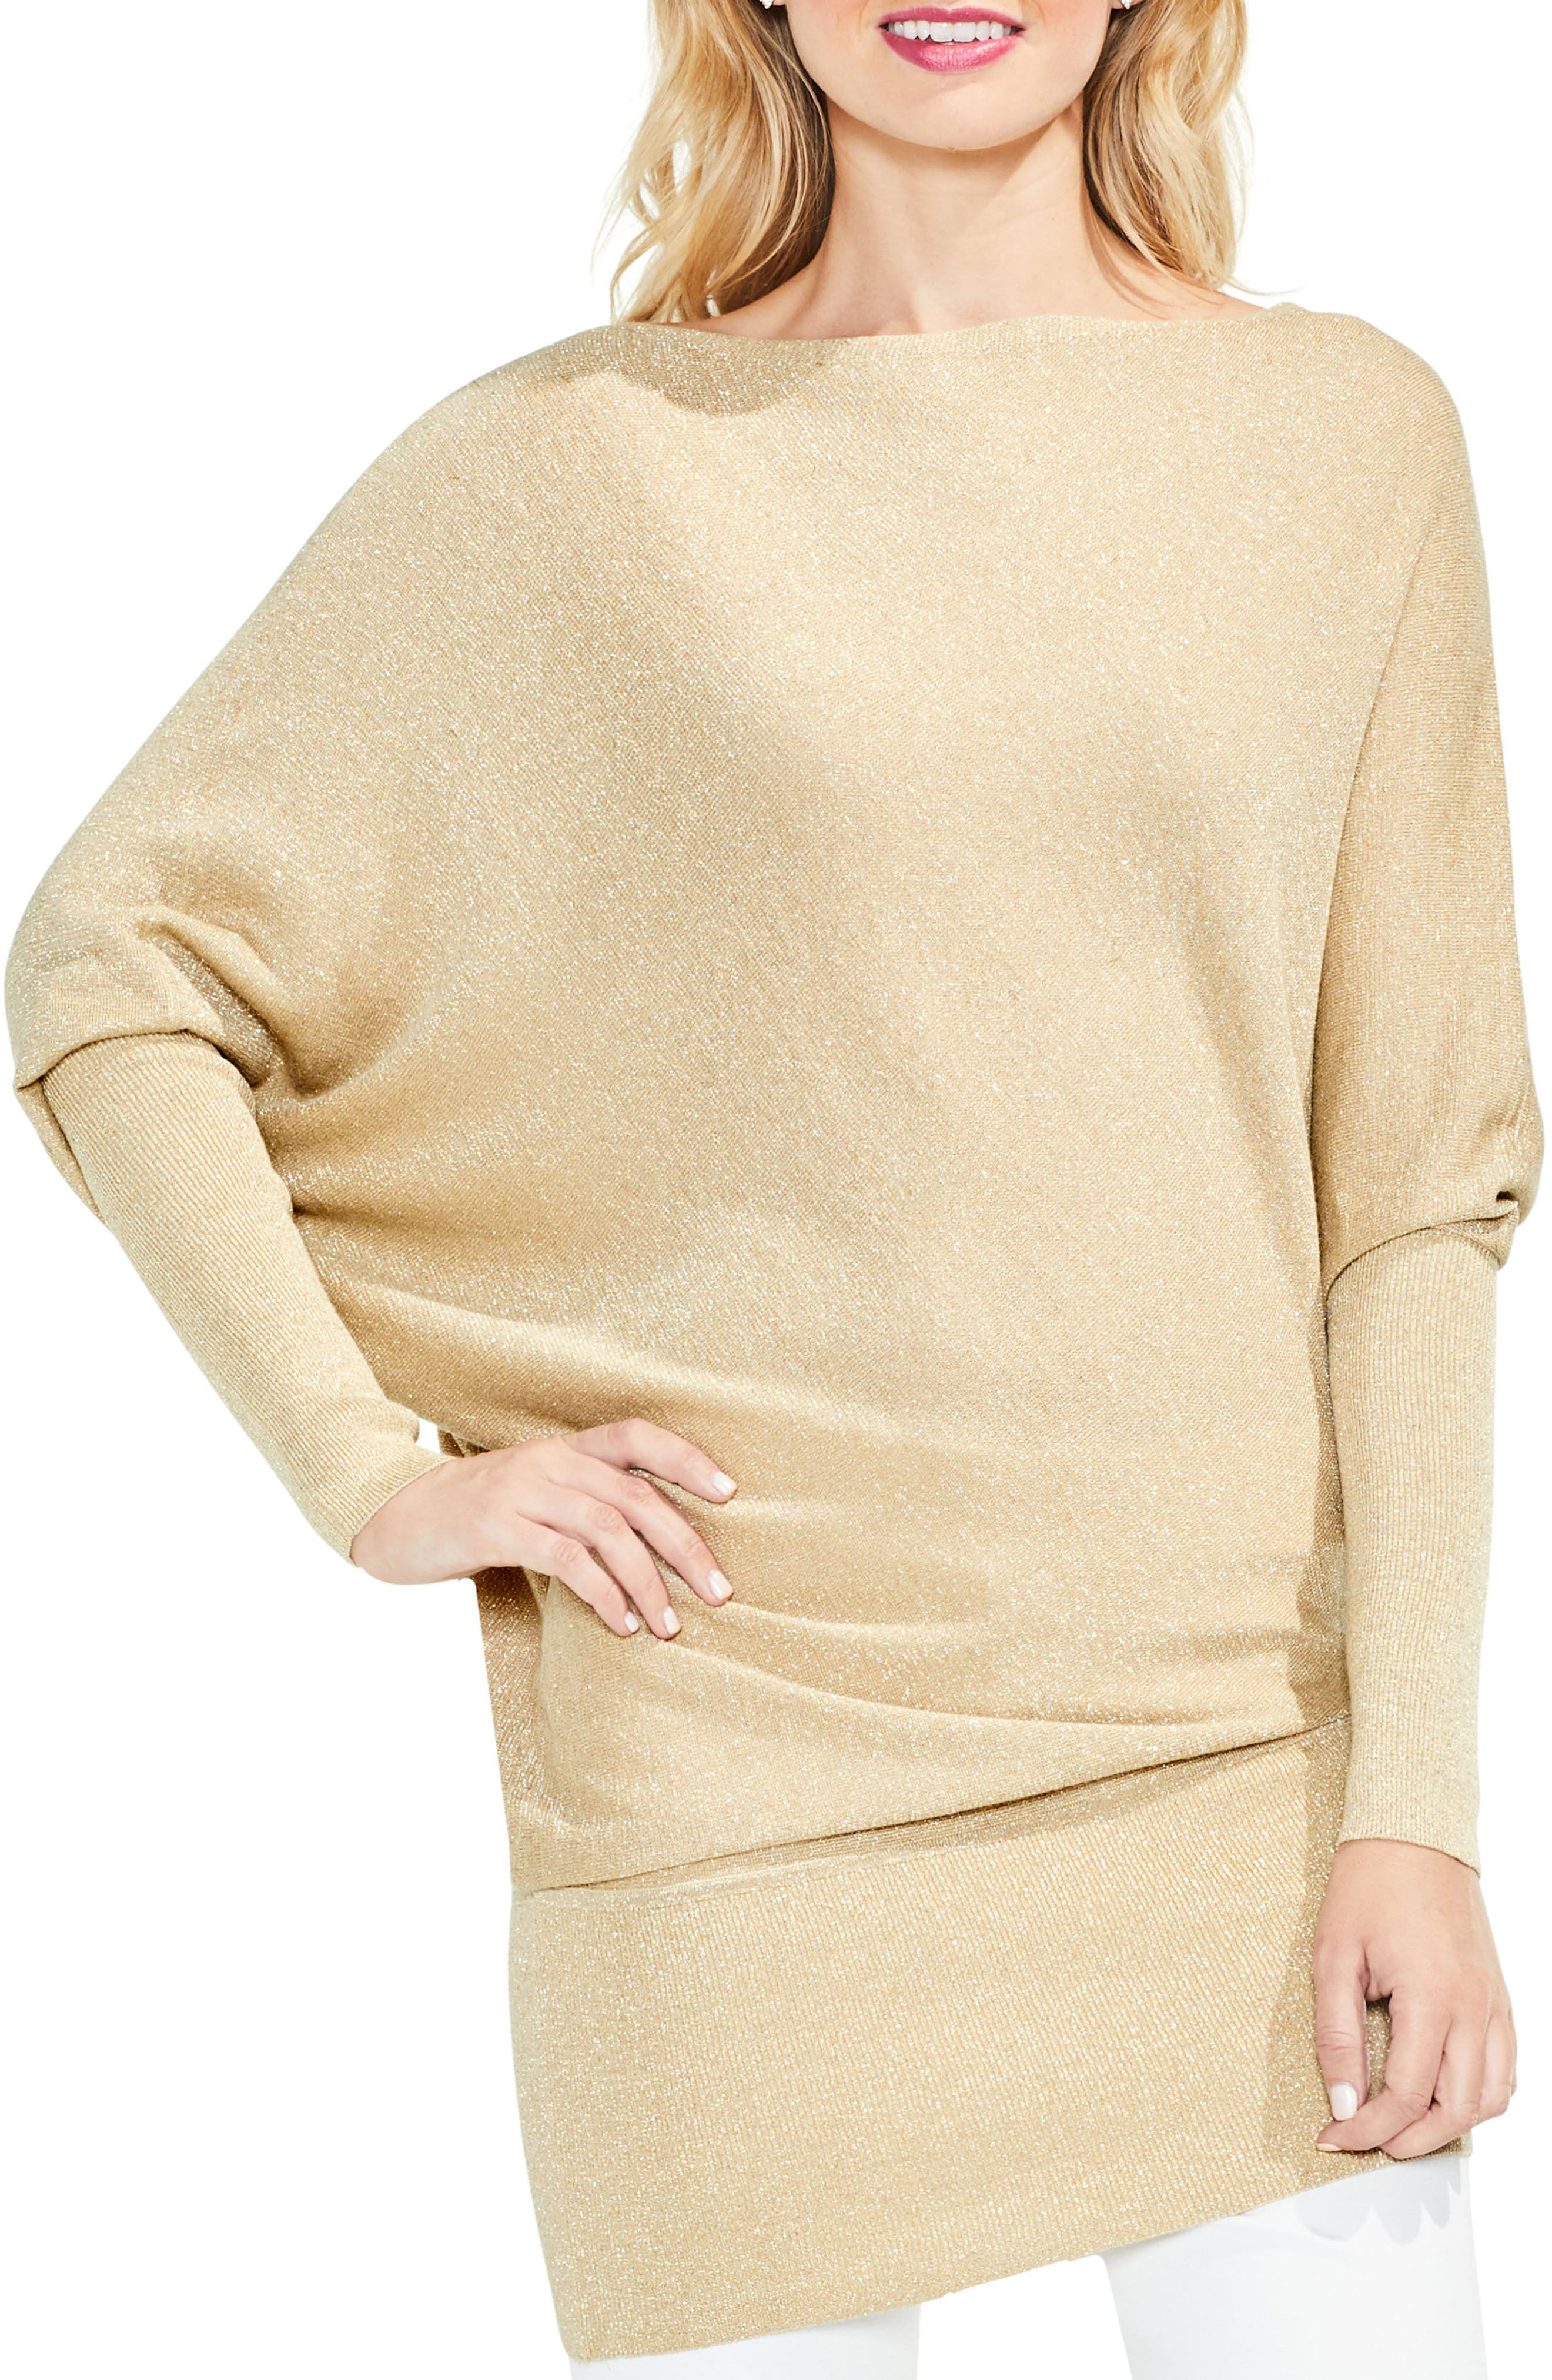 Batwing Sleeve Metallic Sweater,                         Main,                         color, Bisque